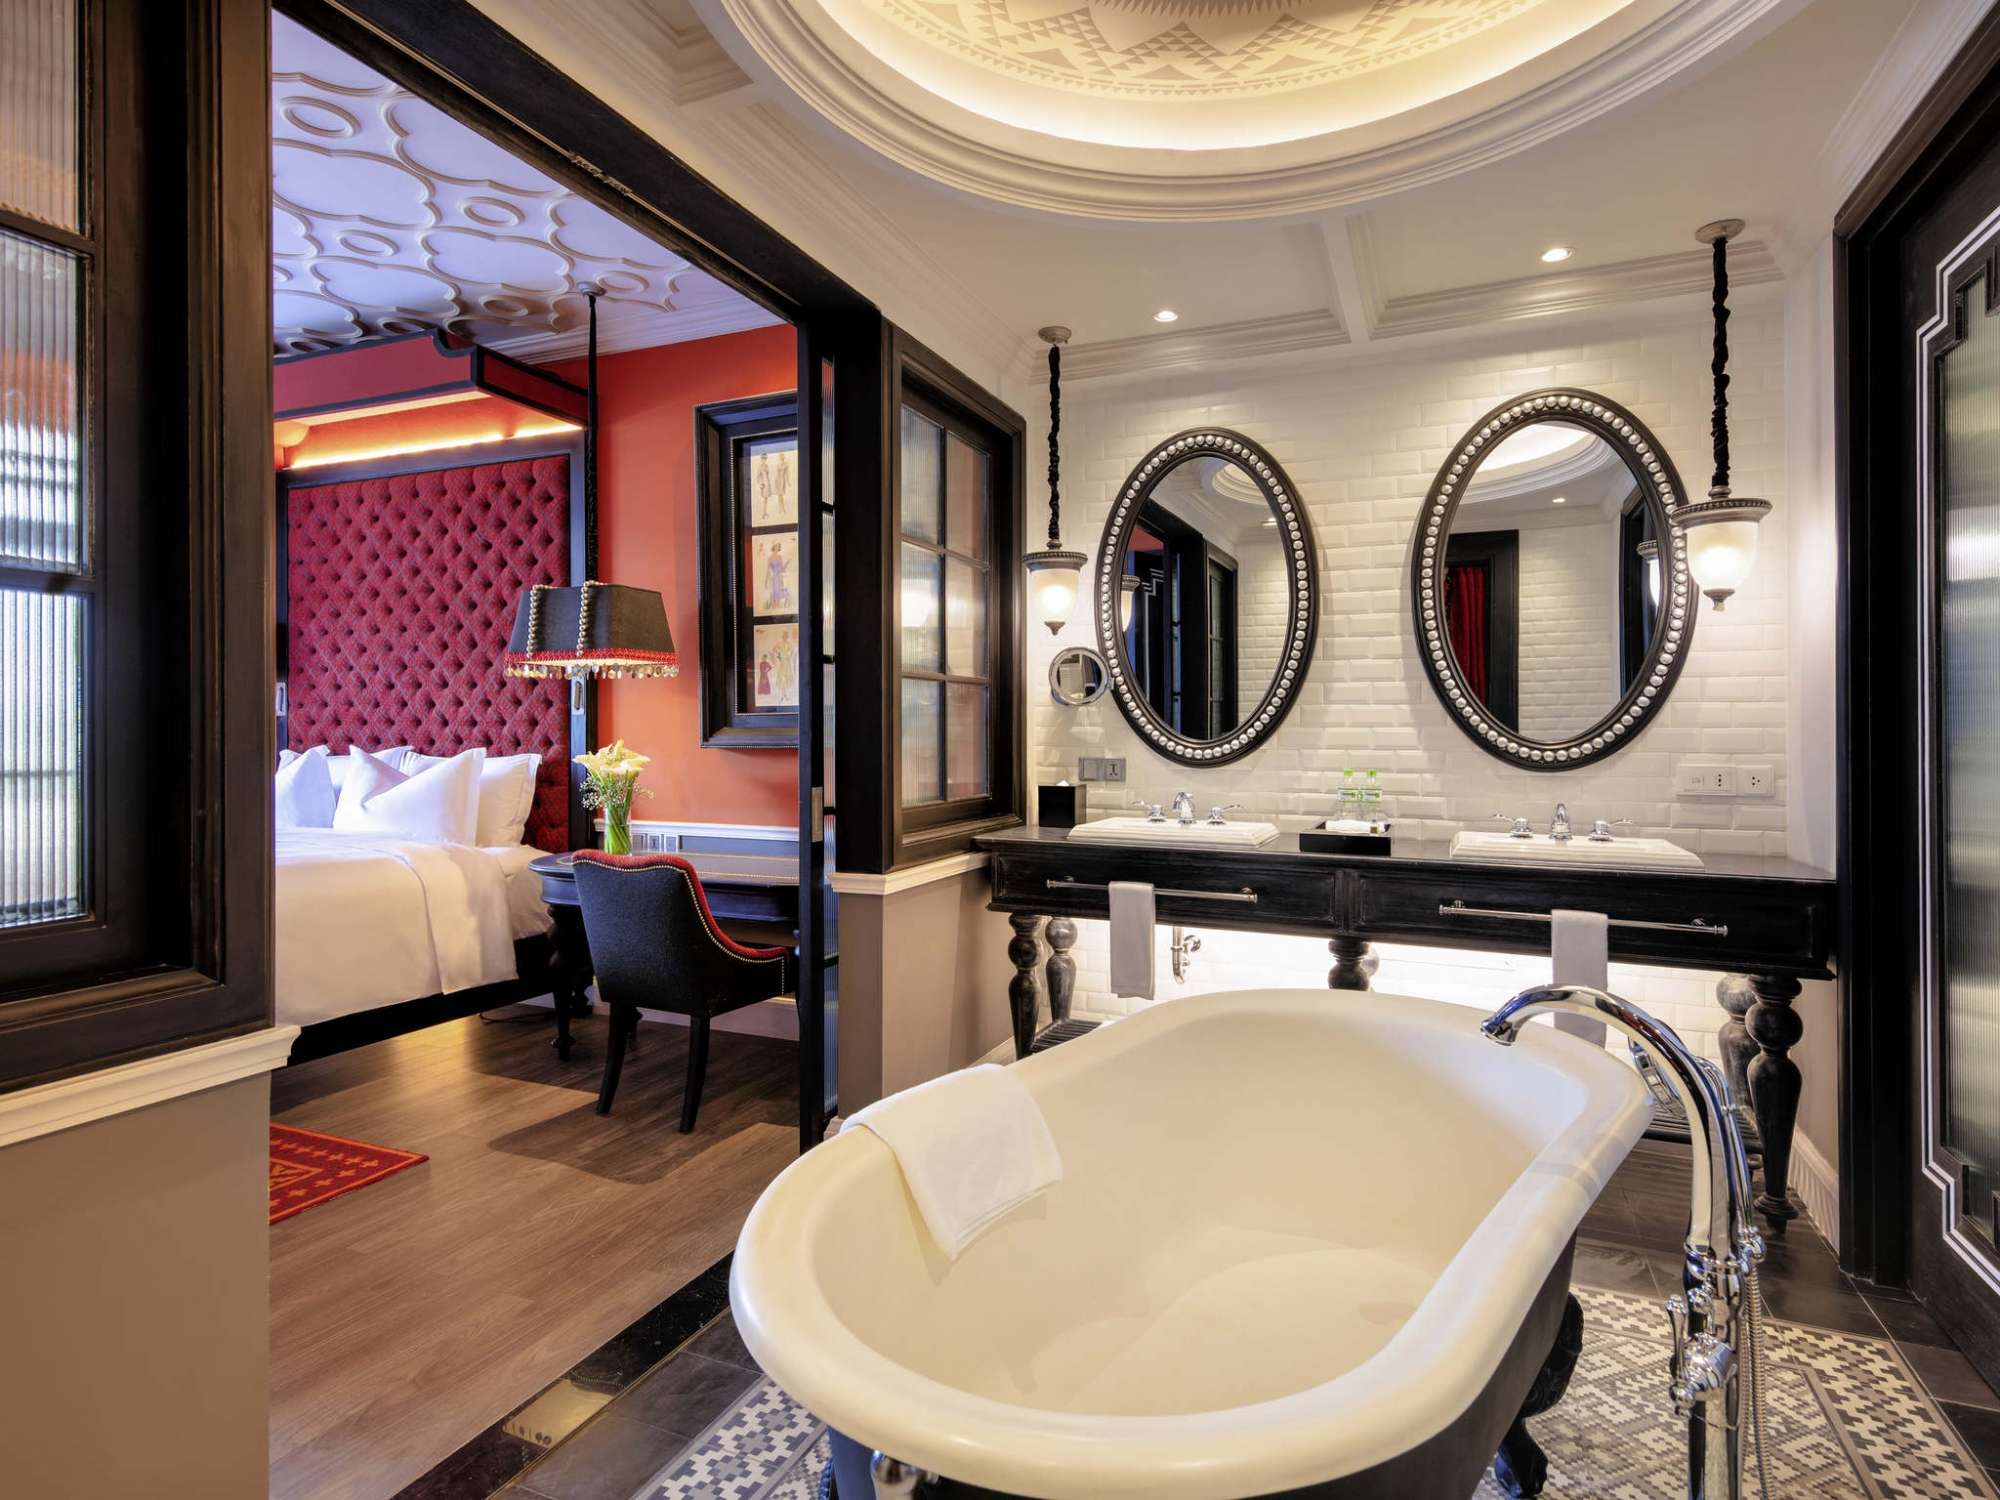 Hạng phòng Deluxe Suite